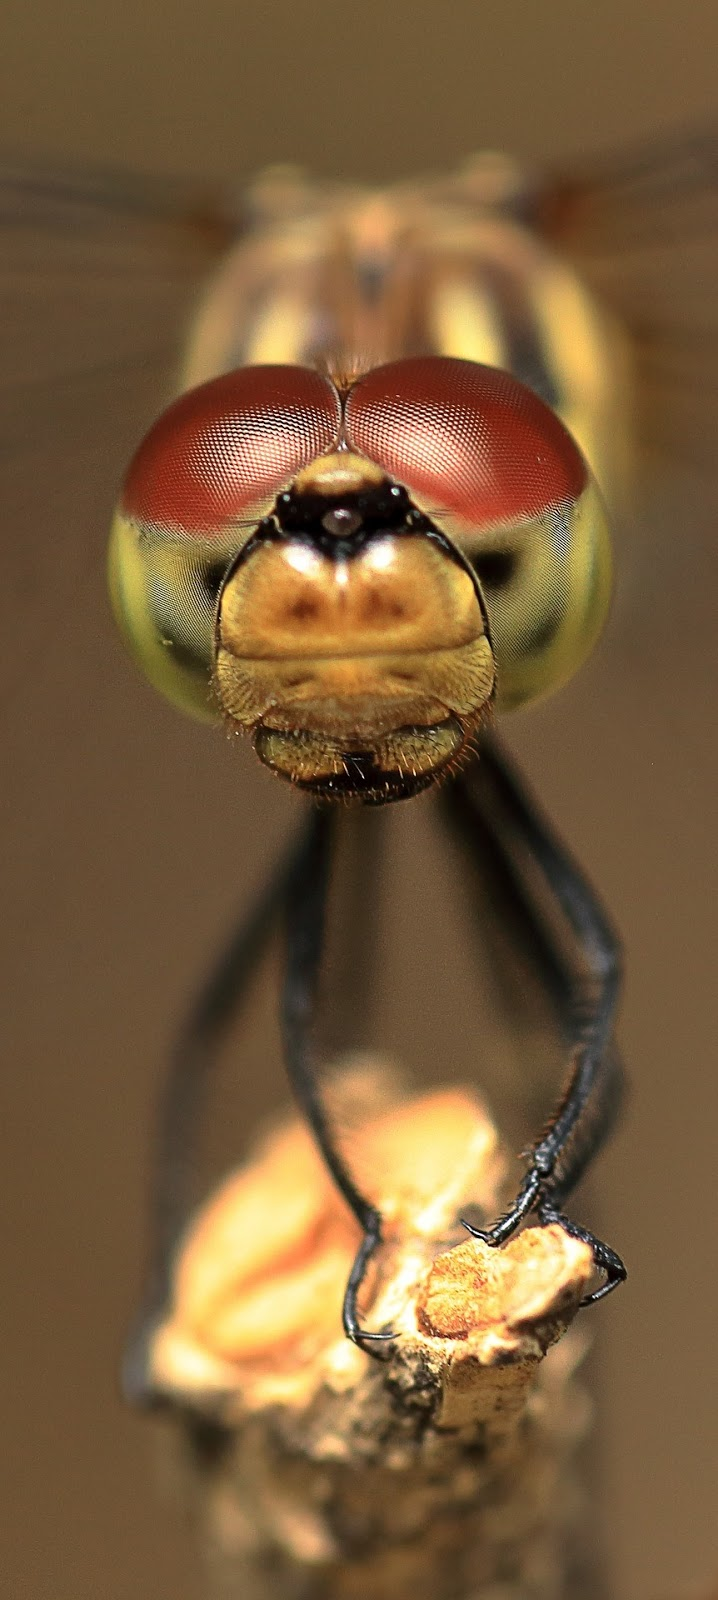 Dragonfly compound eyes.